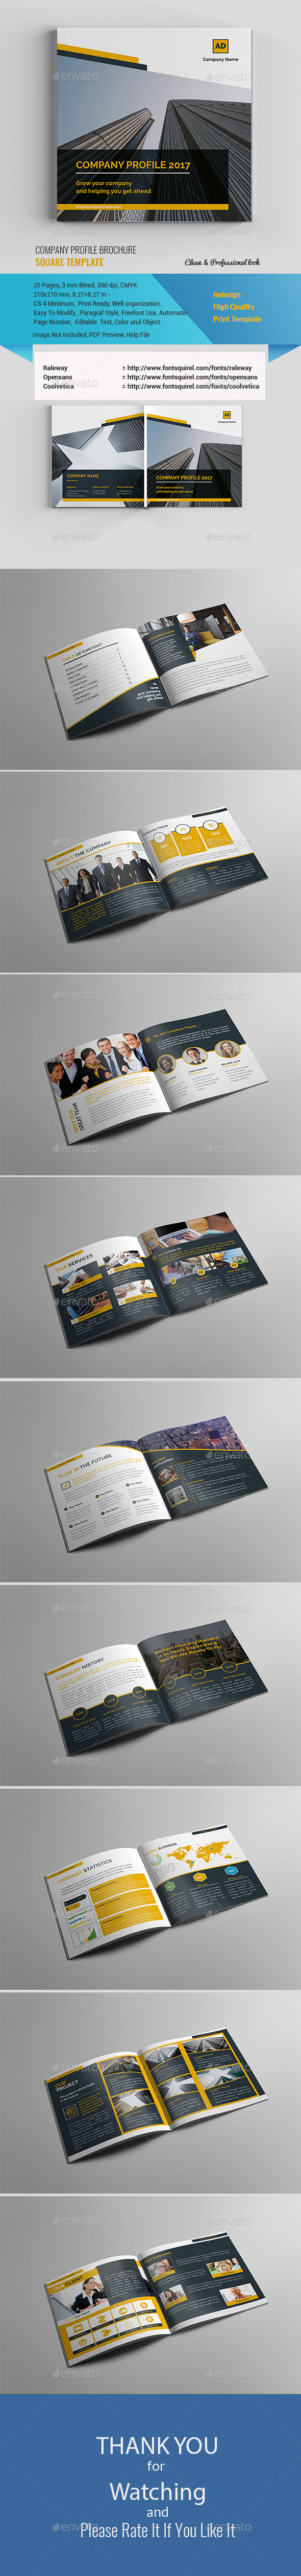 Square Company Profile Vol 1 - Corporate Brochures